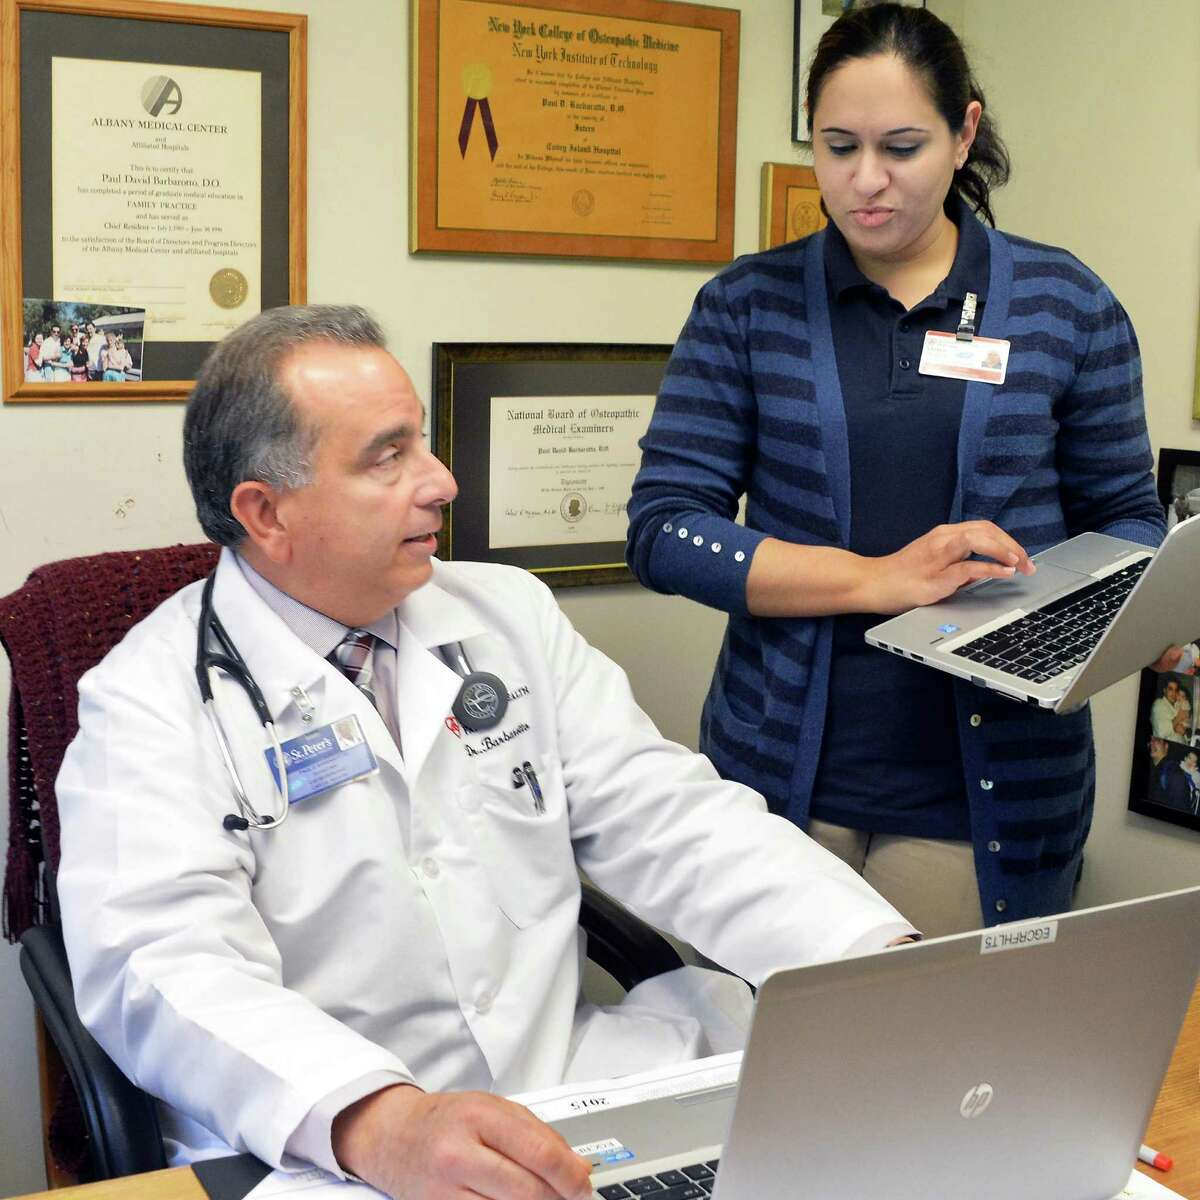 Dr. Paul Barbarotto, left, and medical scribe Saima Akhter review a patient exam at Capital Region Family Health Wednesday May 6, 2015 in Rensselaer, NY. (John Carl D'Annibale / Times Union)